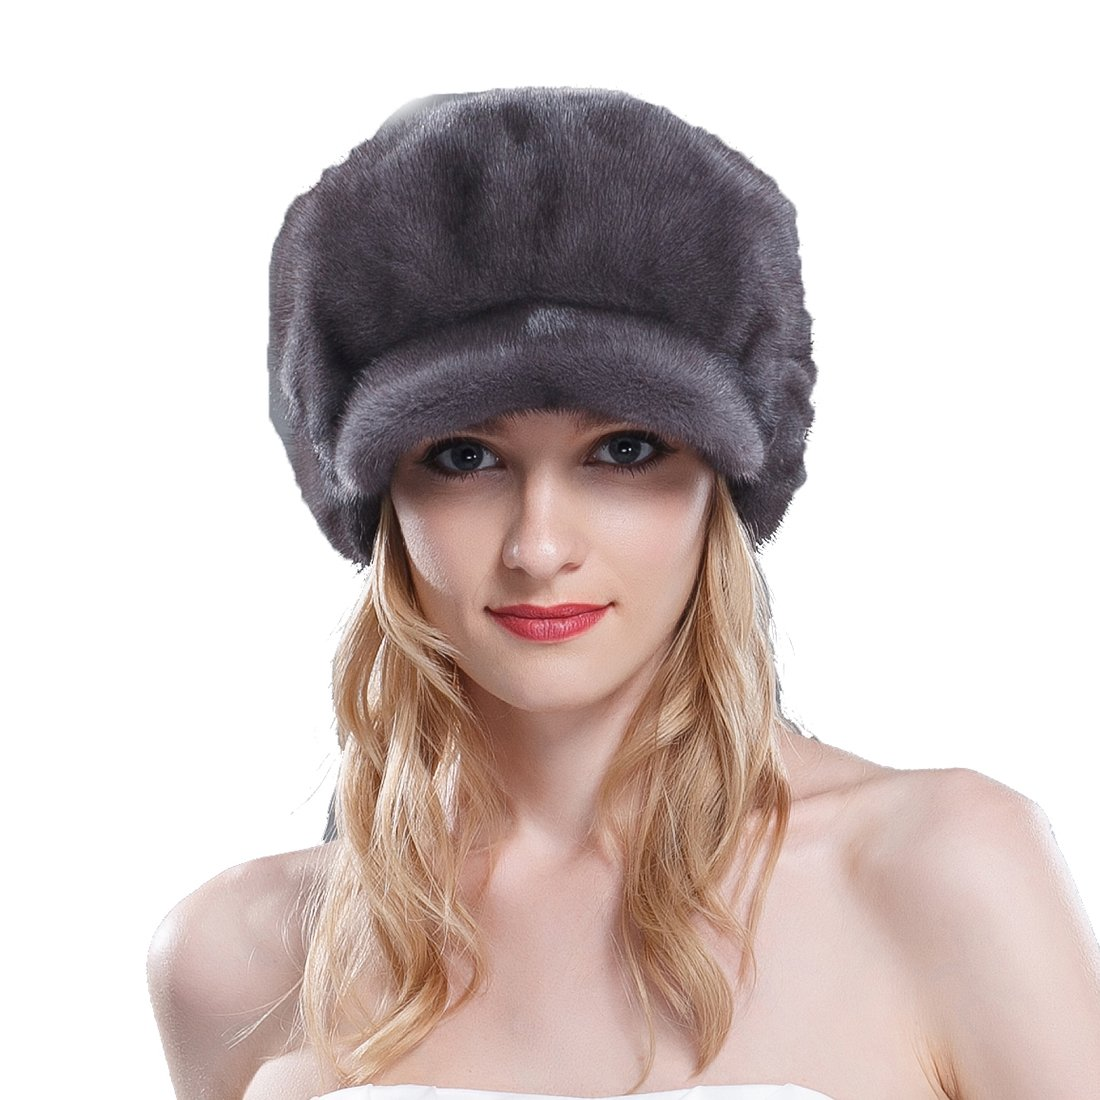 URSFUR Women's Mink Full Fur Stingy Brim Hats with Mink Top (SAGA Velvet Iron Gray)